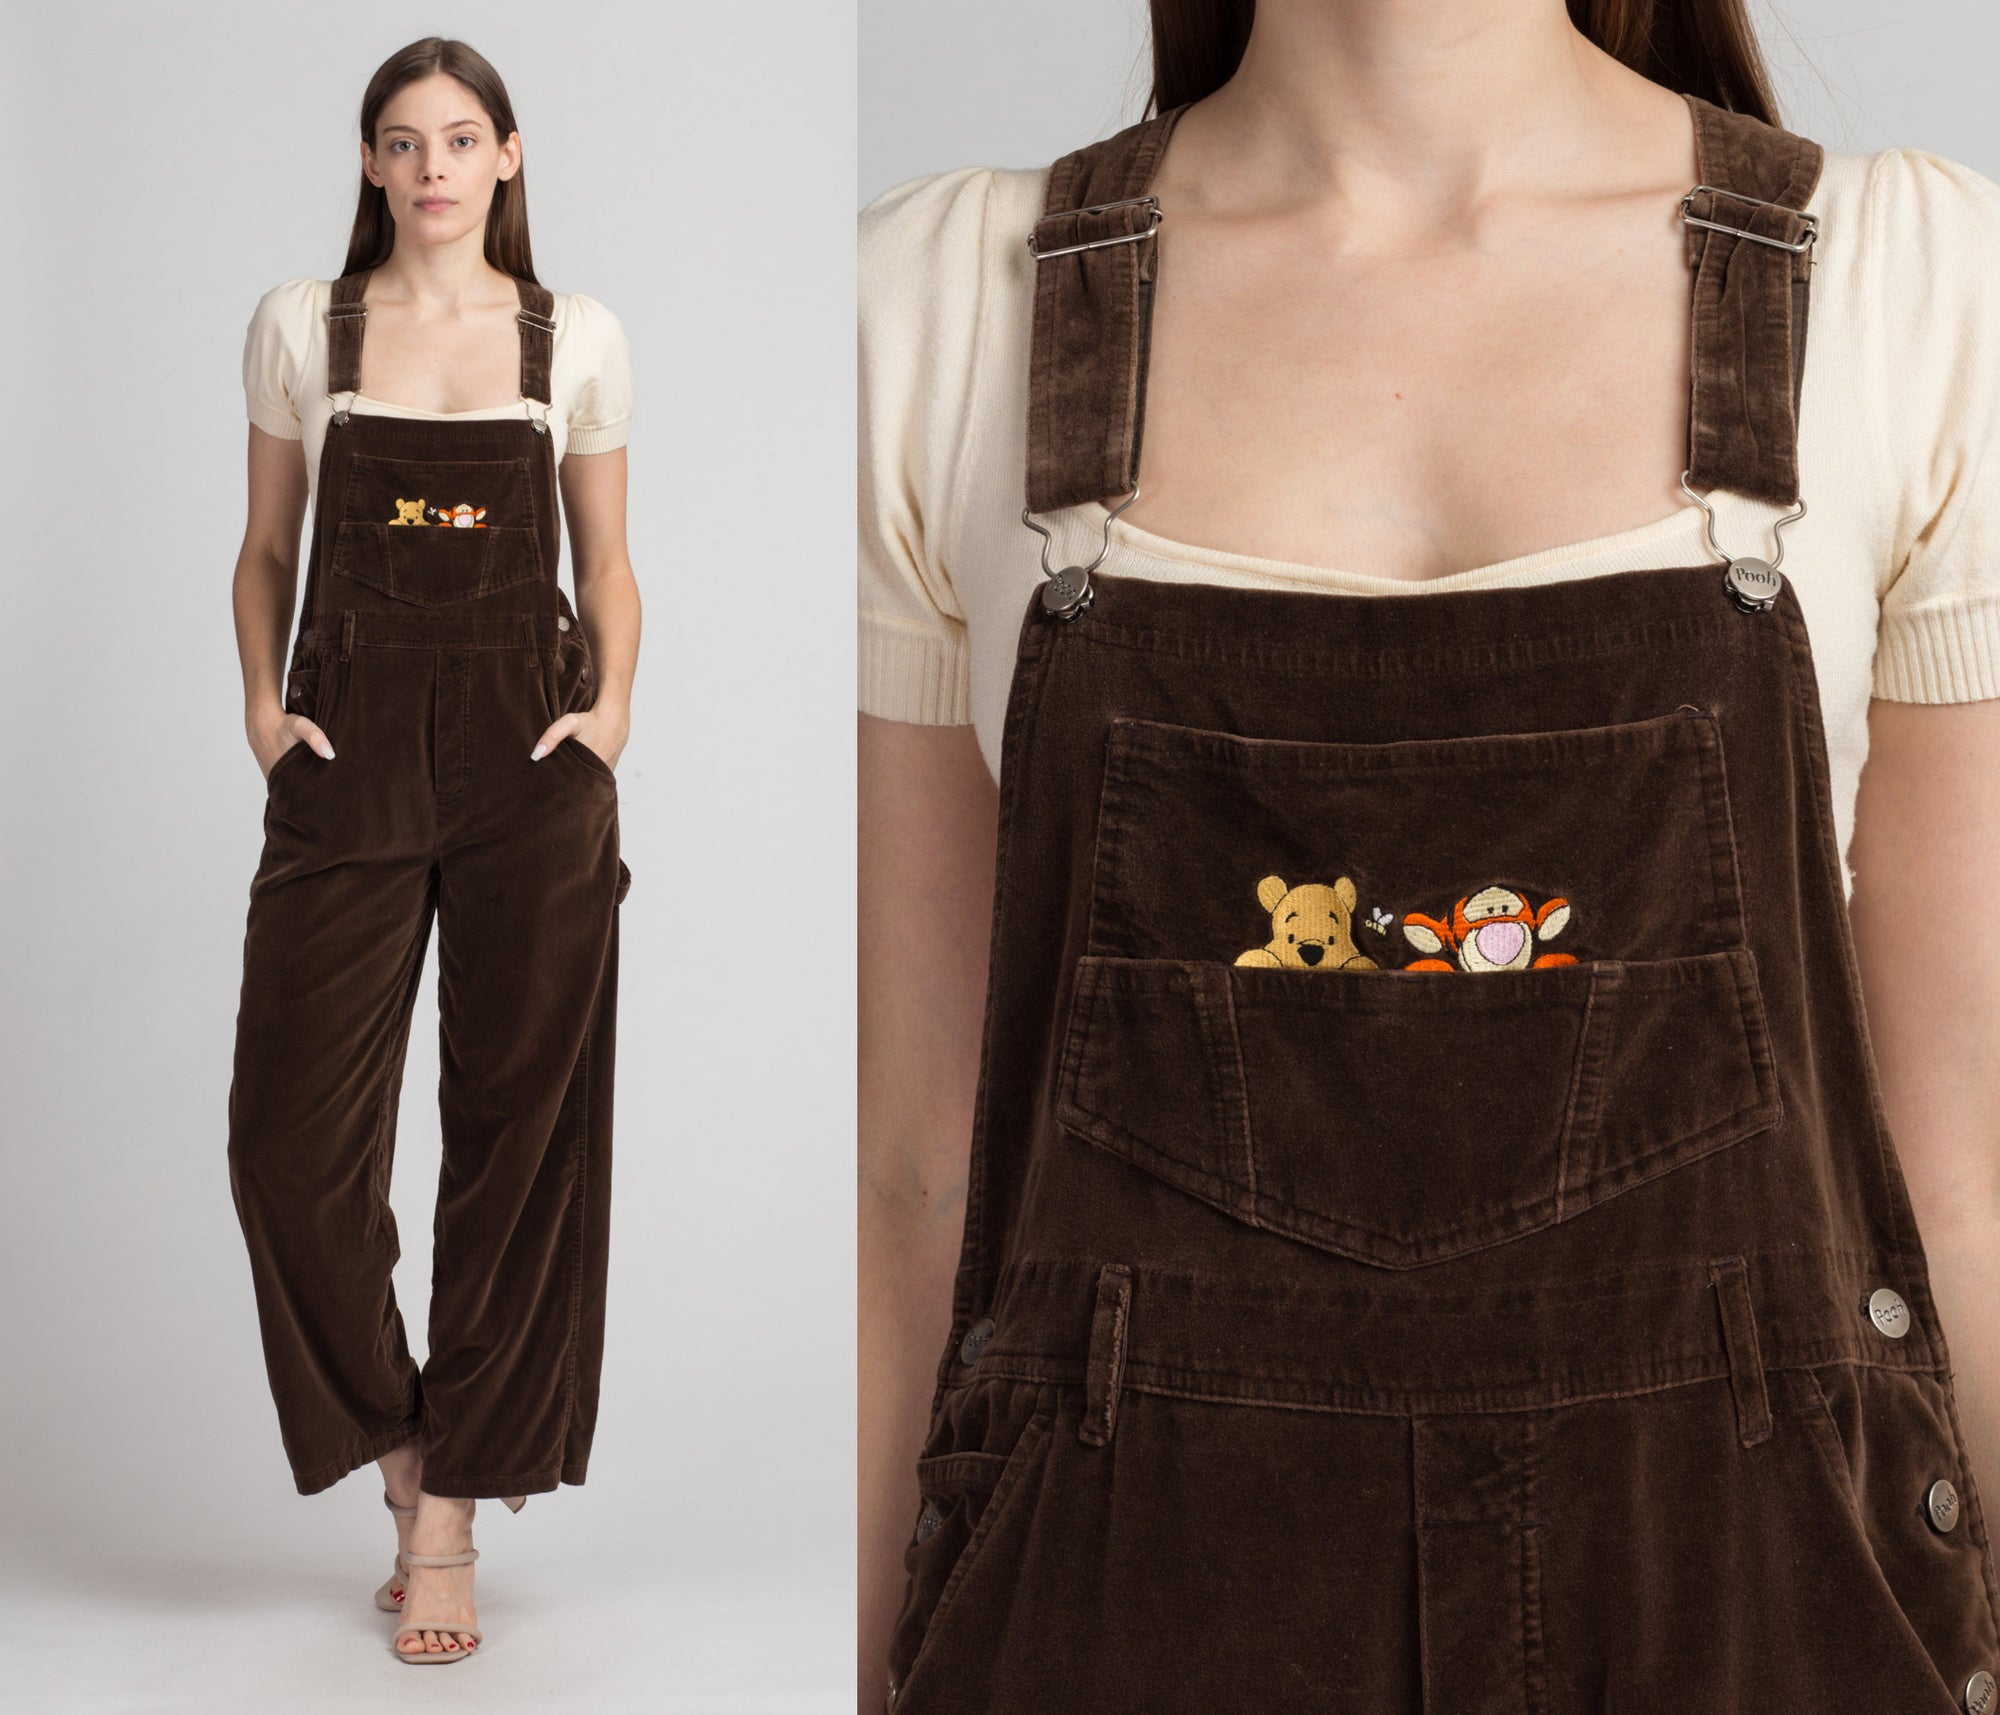 90s Winnie The Pooh Velvet Overalls - Large | Vintage Brown Embroidered Tigger Cartoon Dungarees